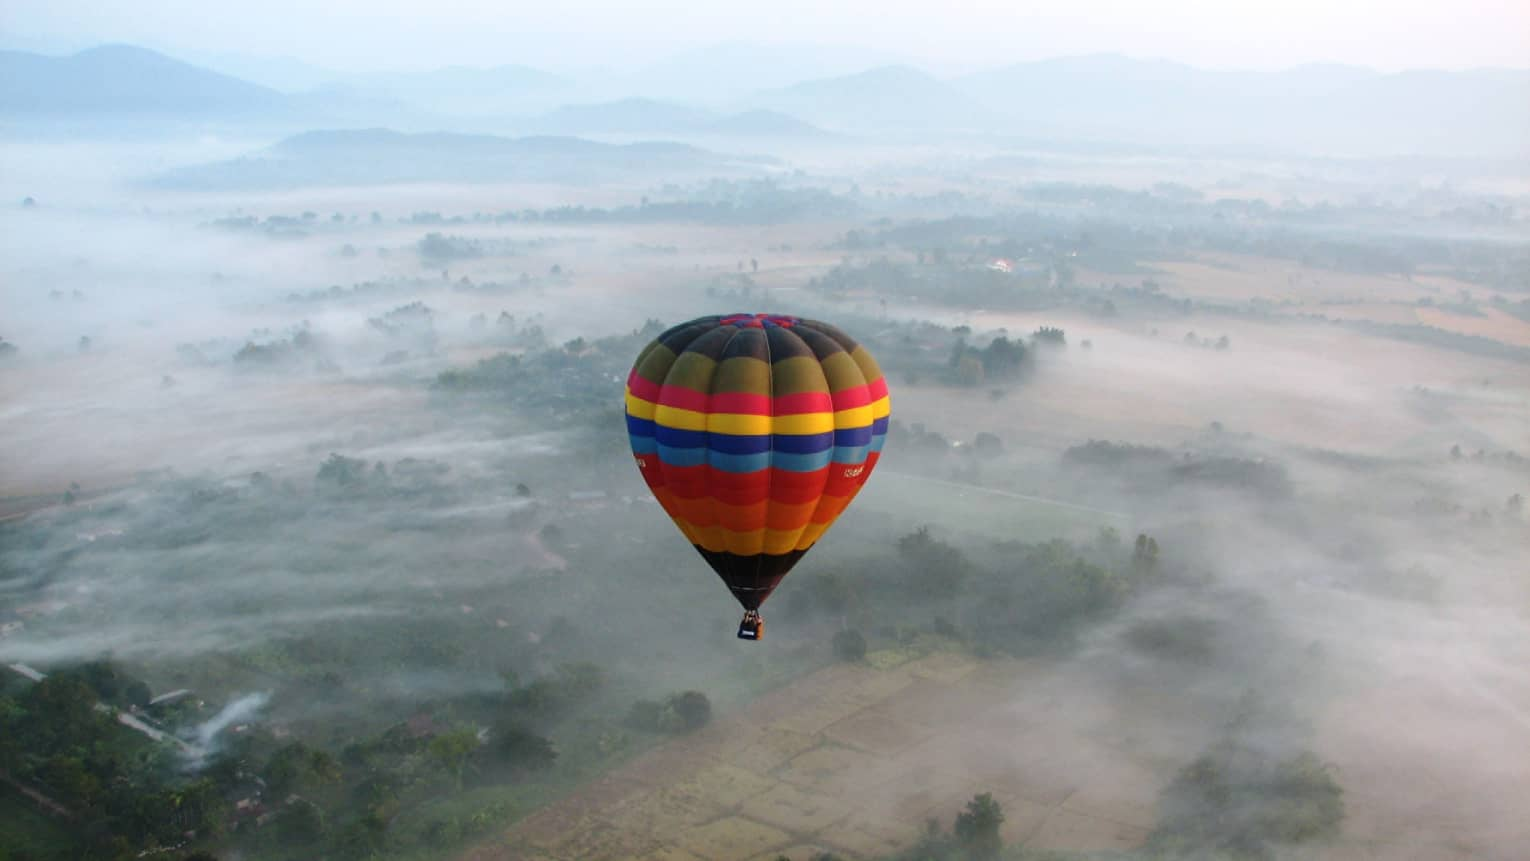 Colourful striped hot air balloon hovers high above field in clouds